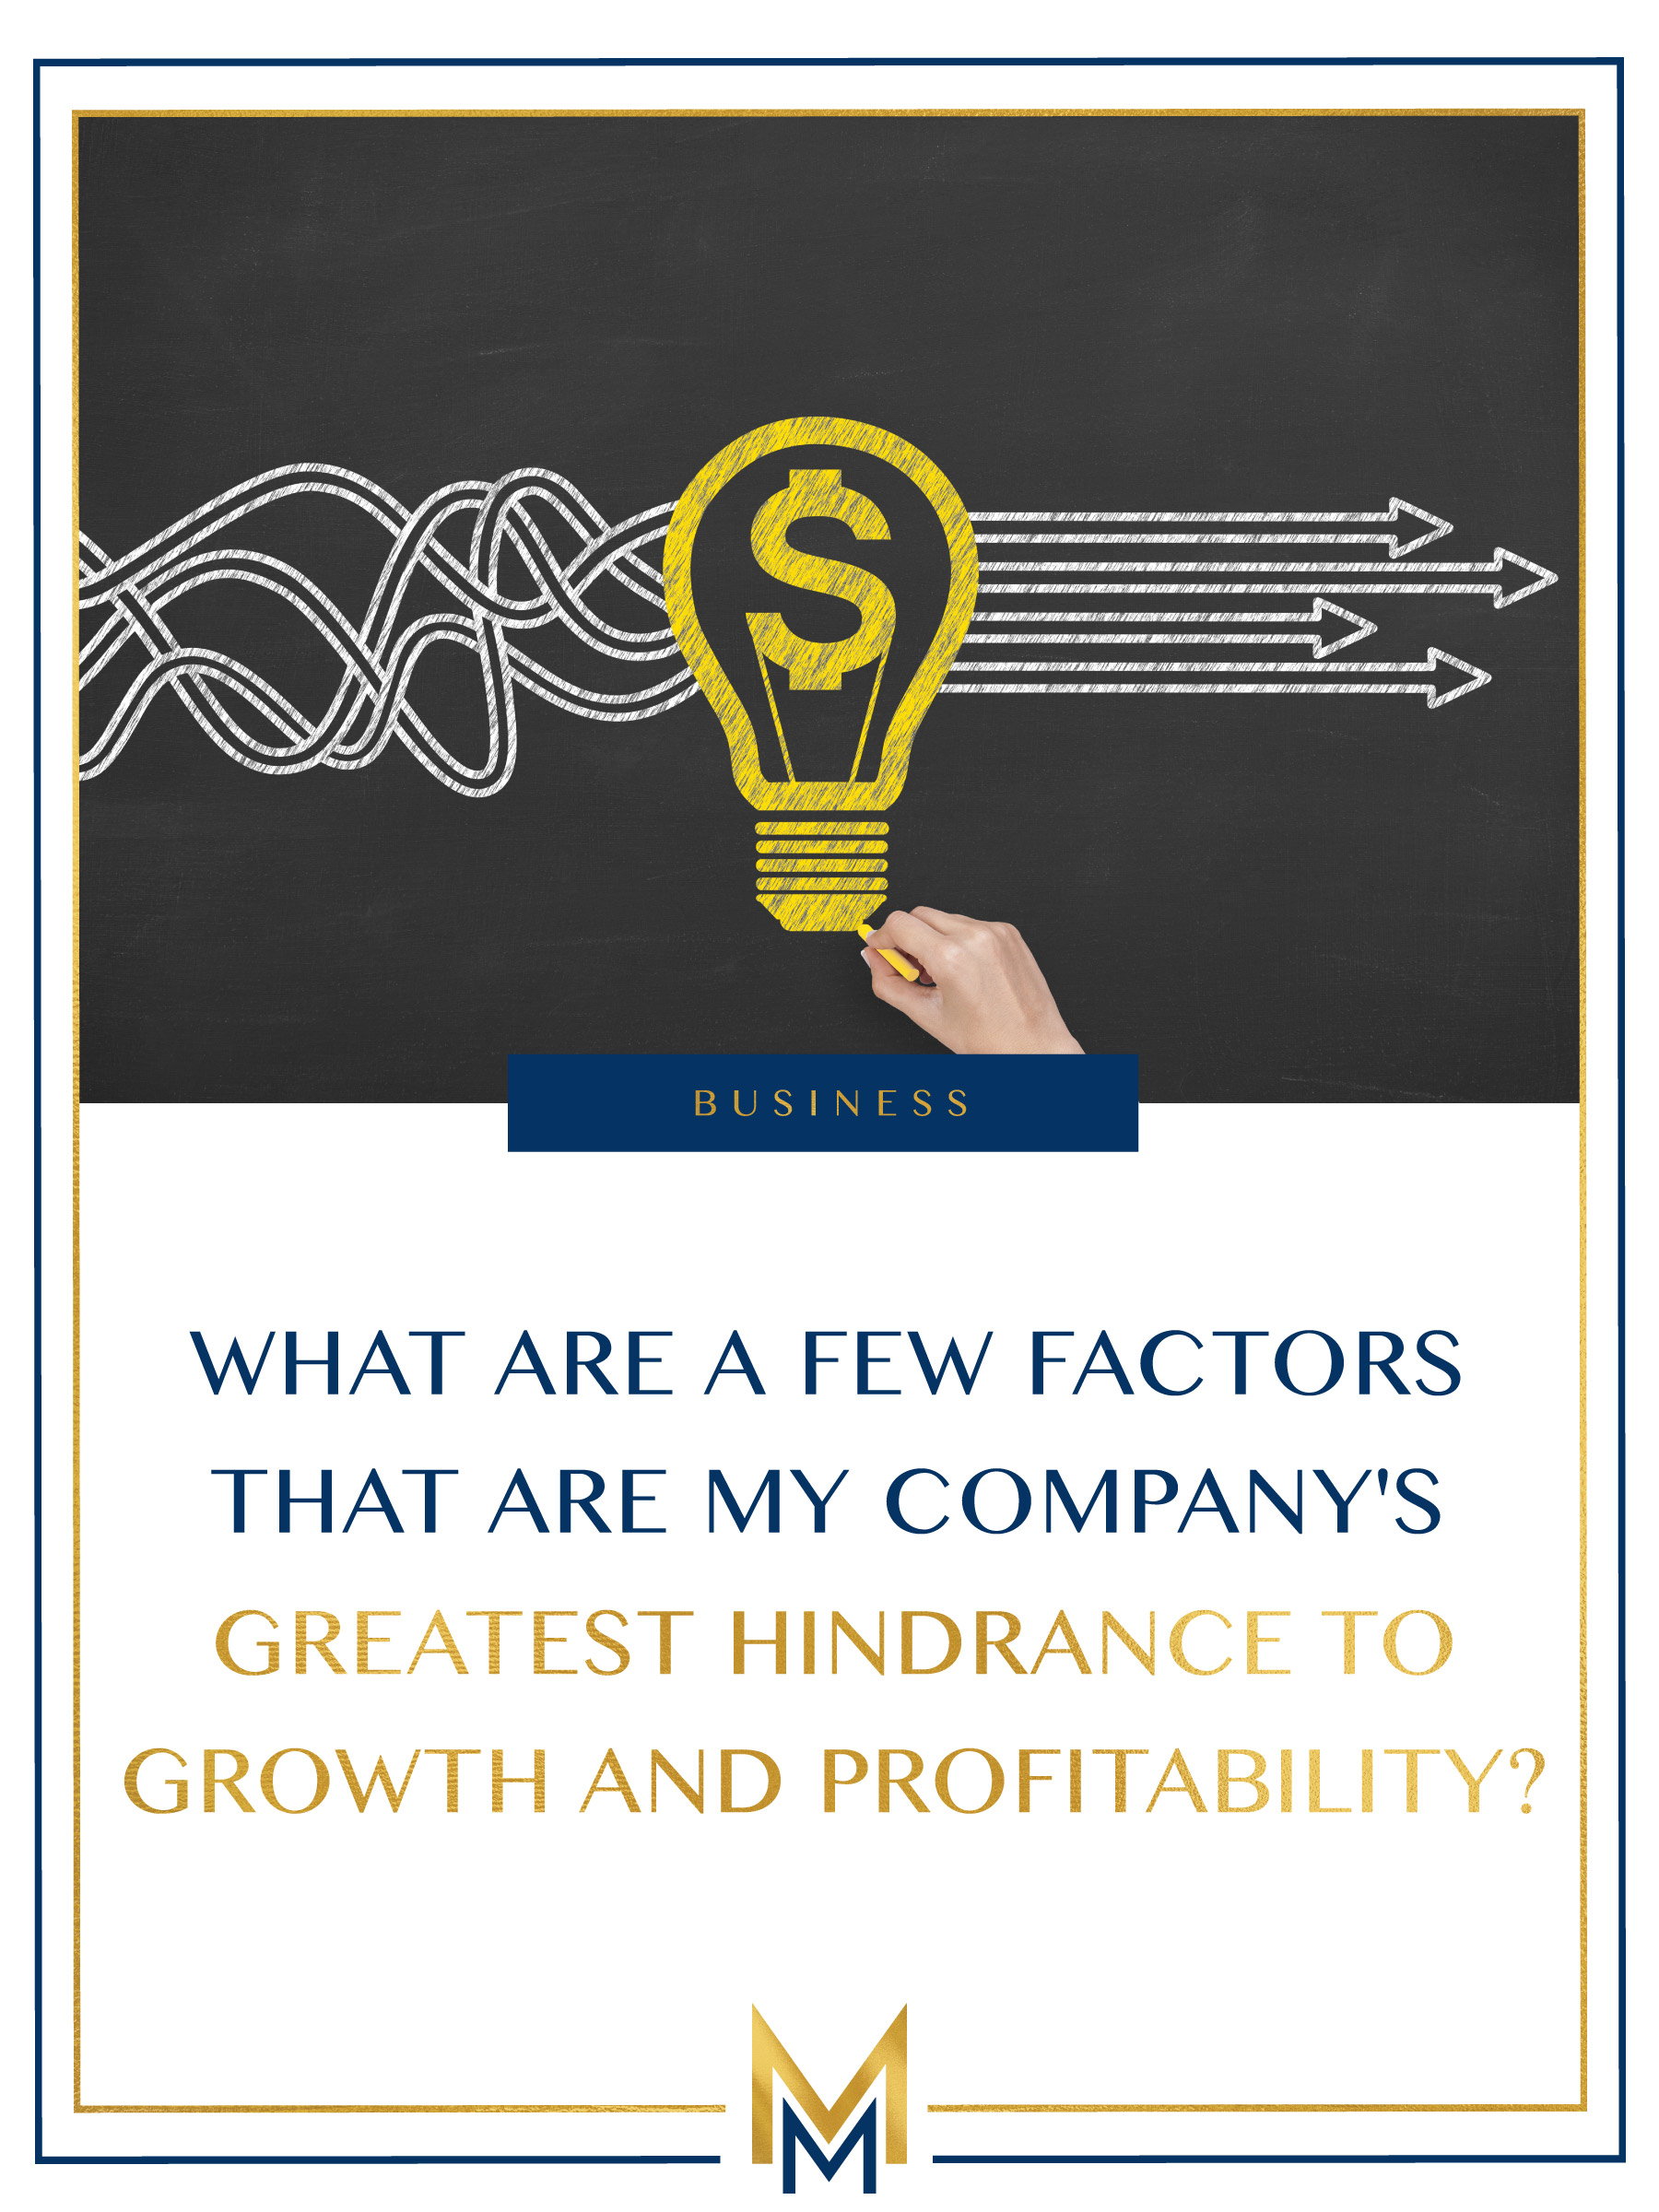 what-are-factors-hindrance-to-growth-and-profitability.jpg